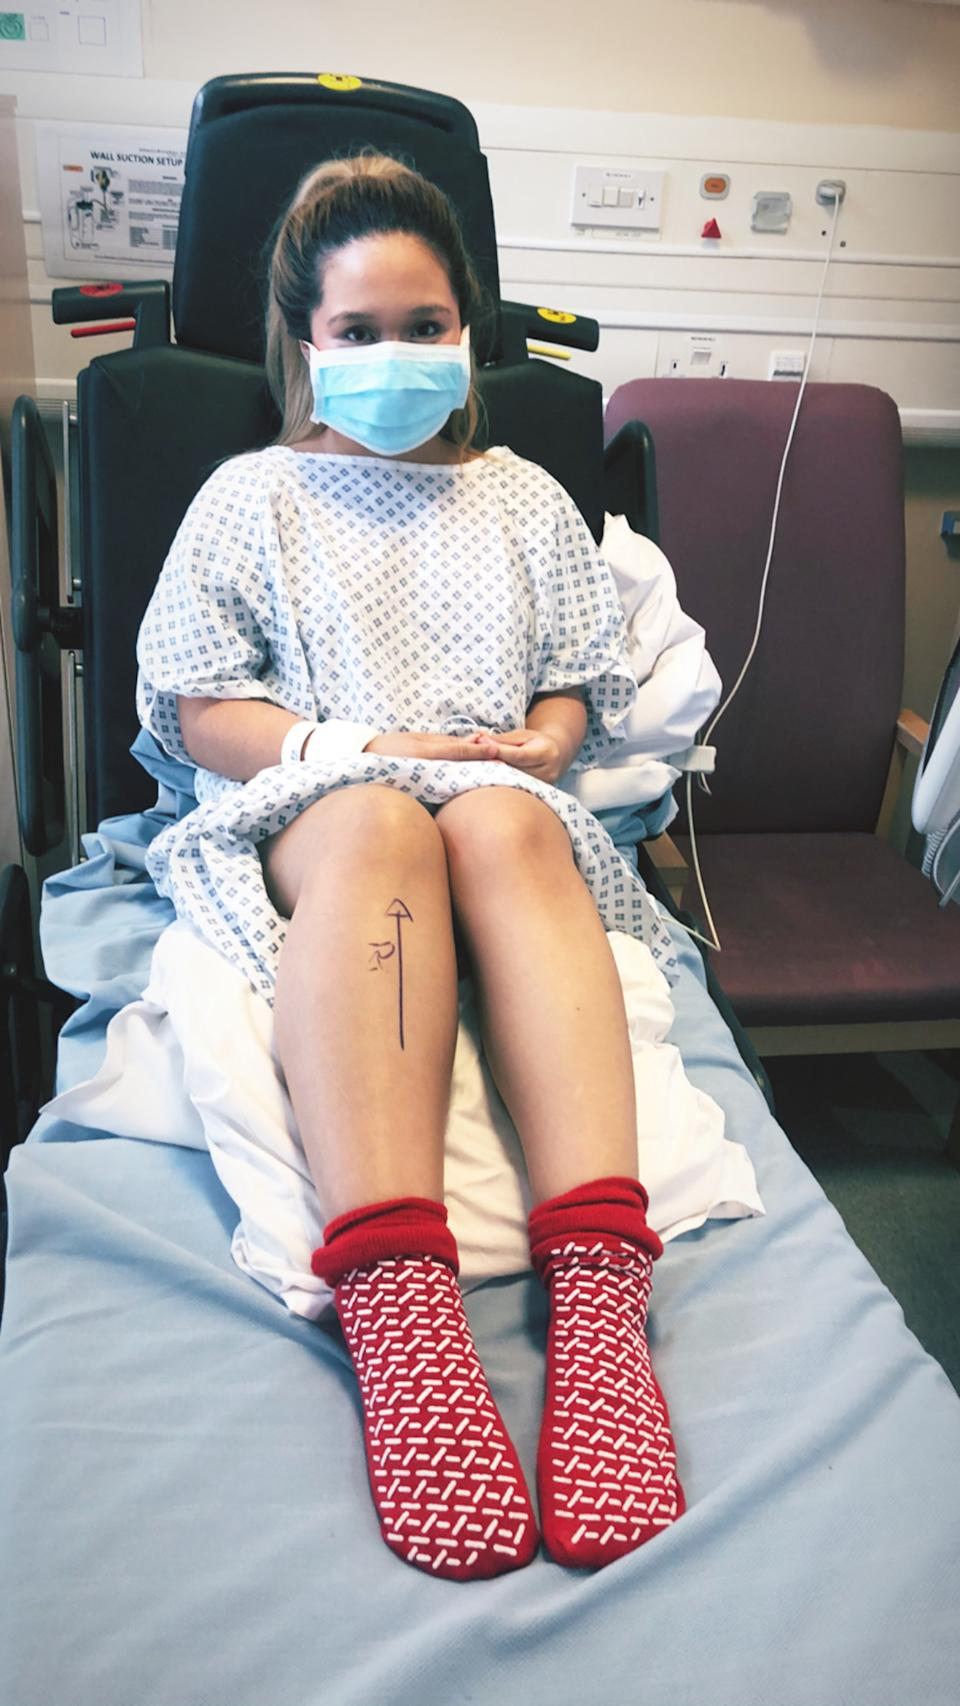 The nurse was diagnosed in April and had her leg removed below the knee in May. (Caters)